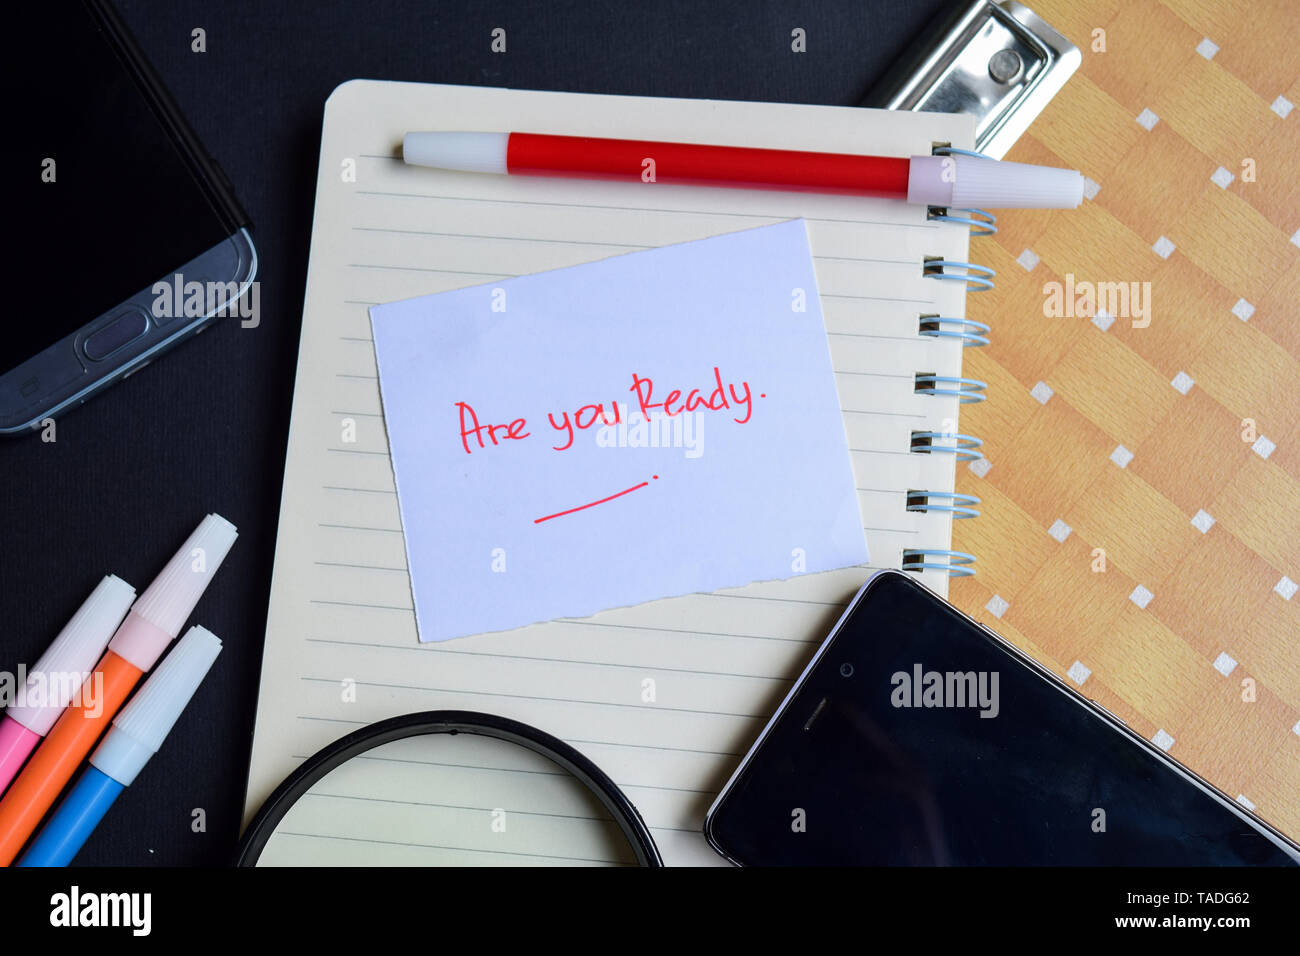 Are you Ready written on paper isolated on black table - Stock Image